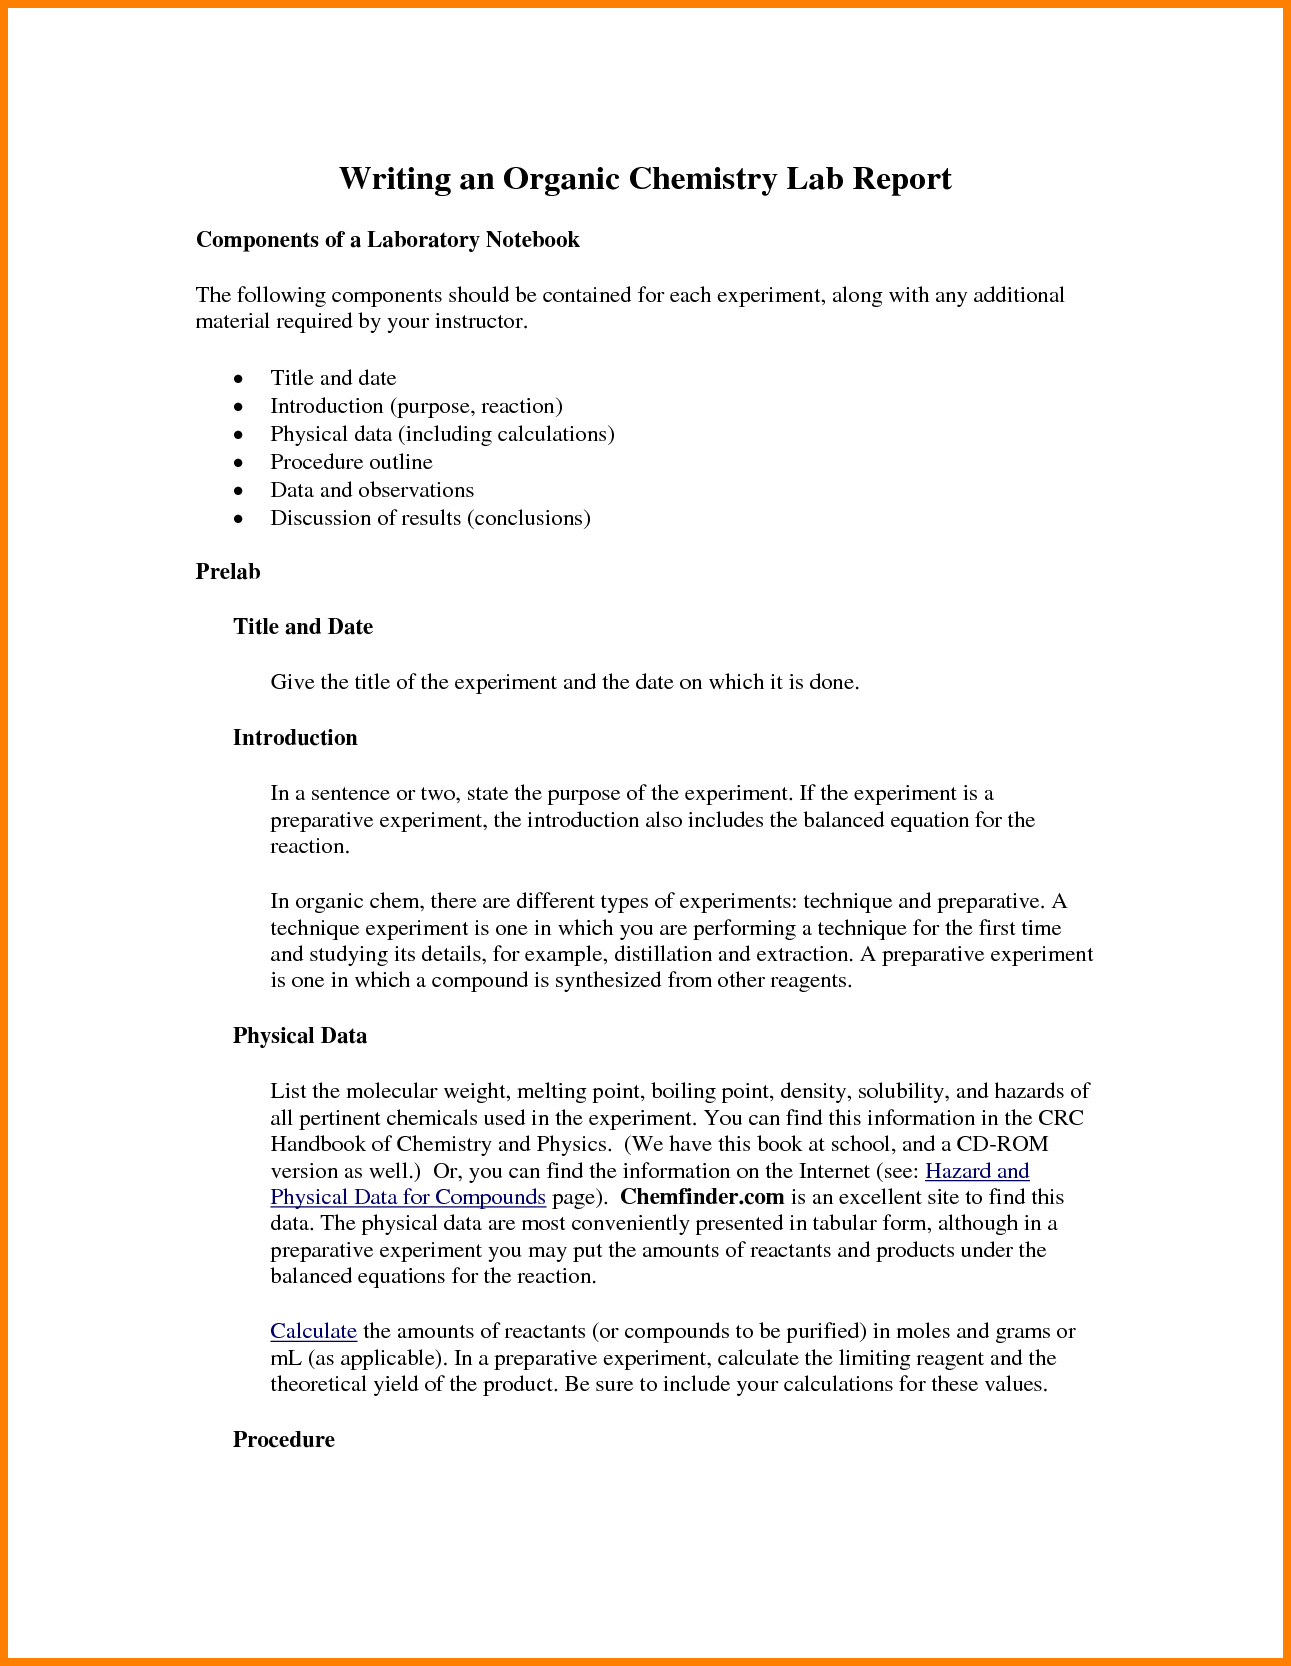 chemistry lab report template Melo.in tandem.co